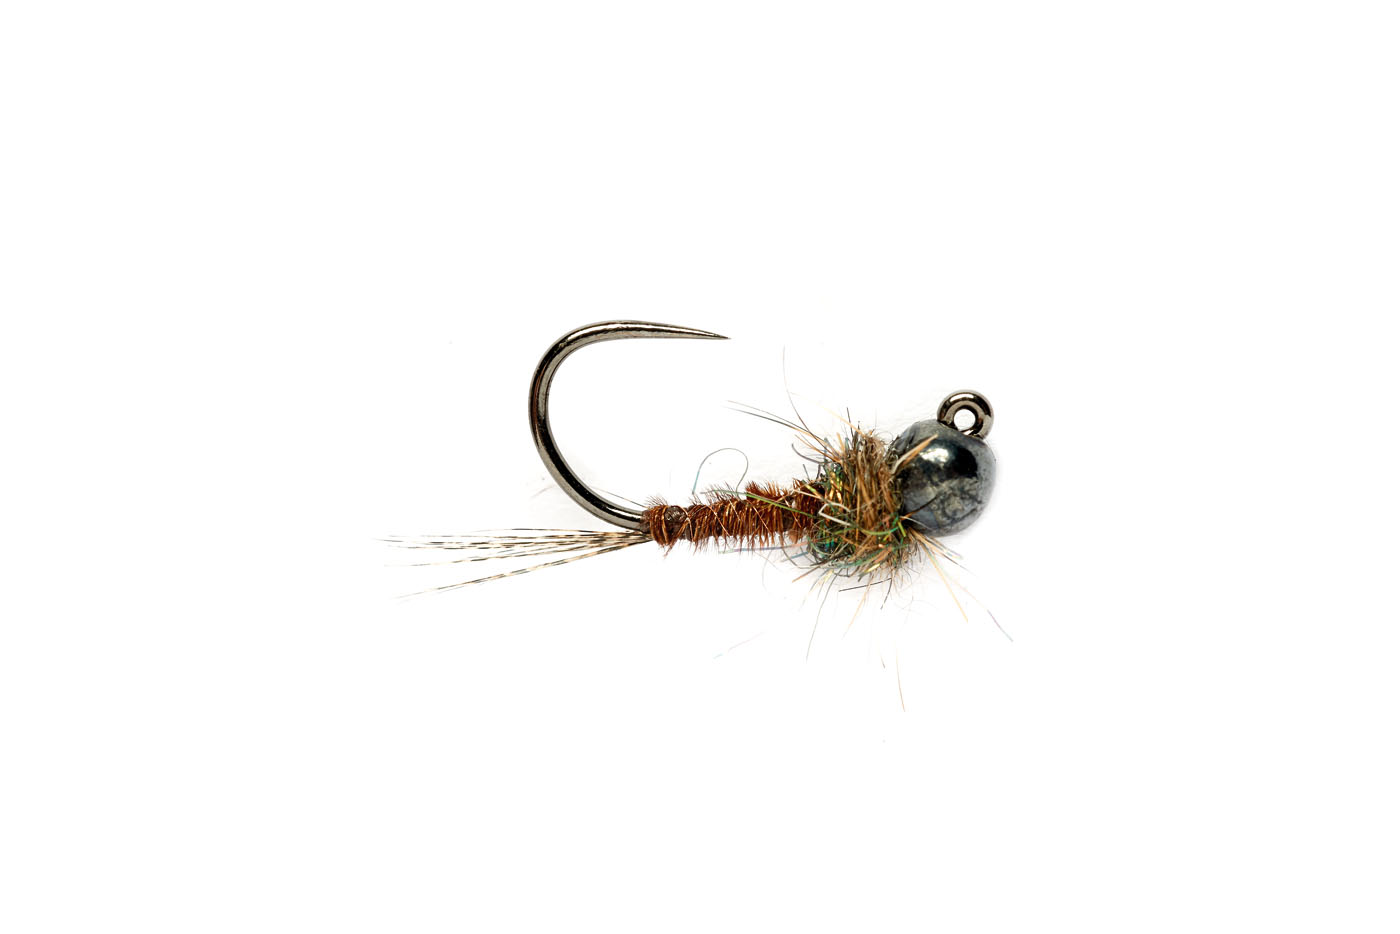 Pheasant Tail Natural Jig Barbless